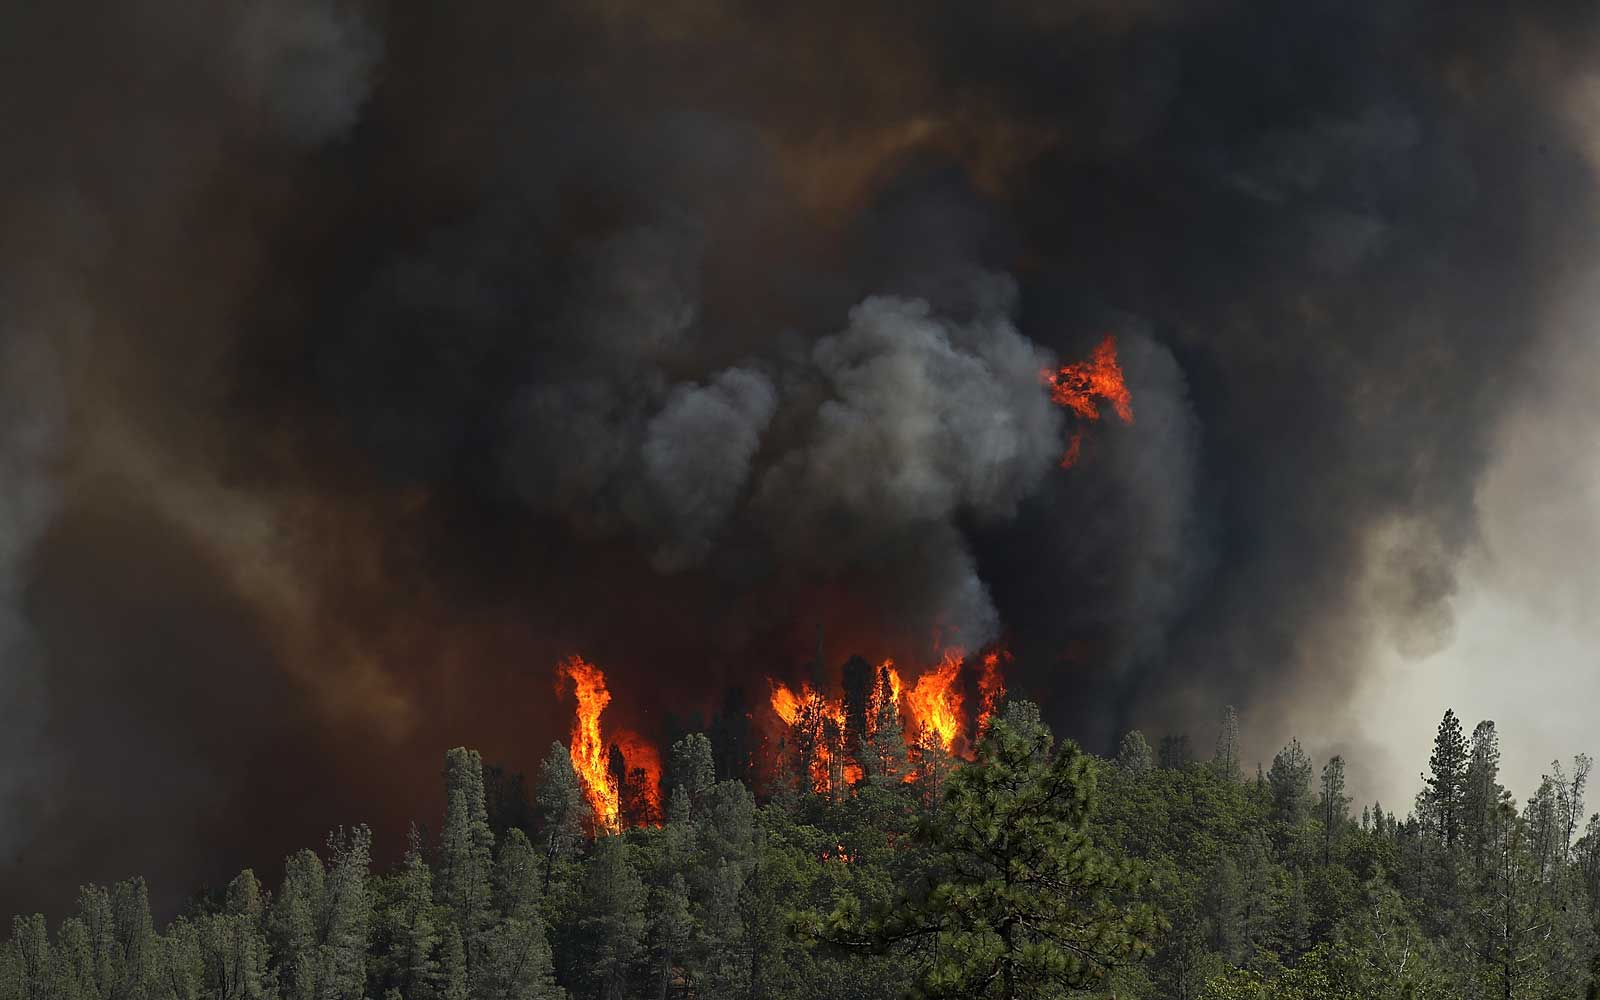 Massive Wildfire Spreads To 80,000 Acres, Scorches Homes Near Redding, CA